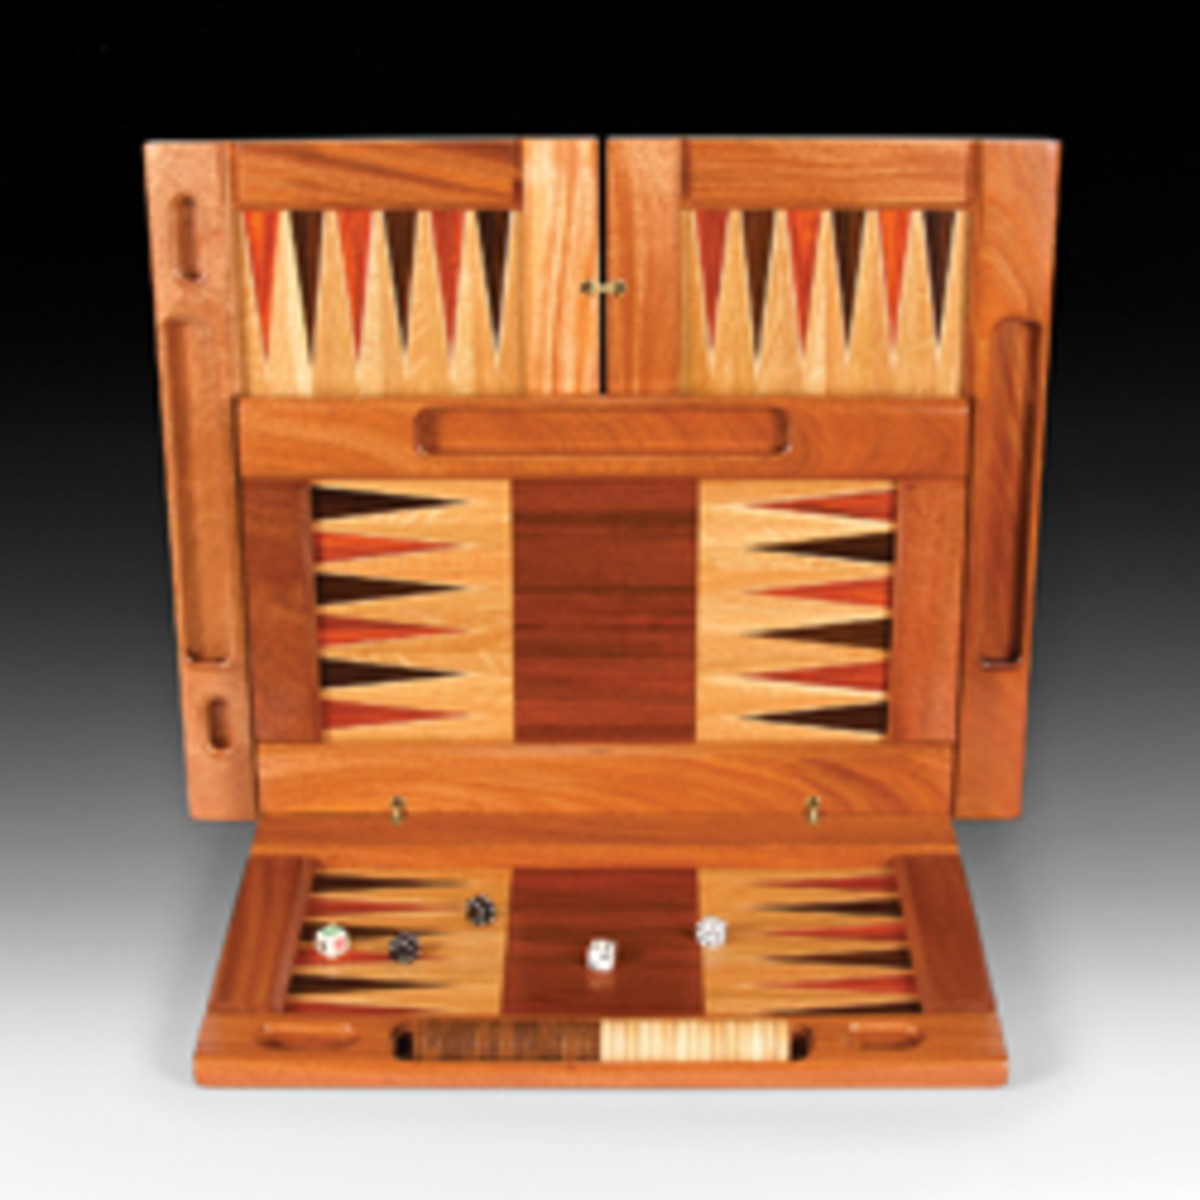 CraftBoston presents handcrafted work for sale, such as this backgammon set by exhibitor John Deveer of Davis, Calif.